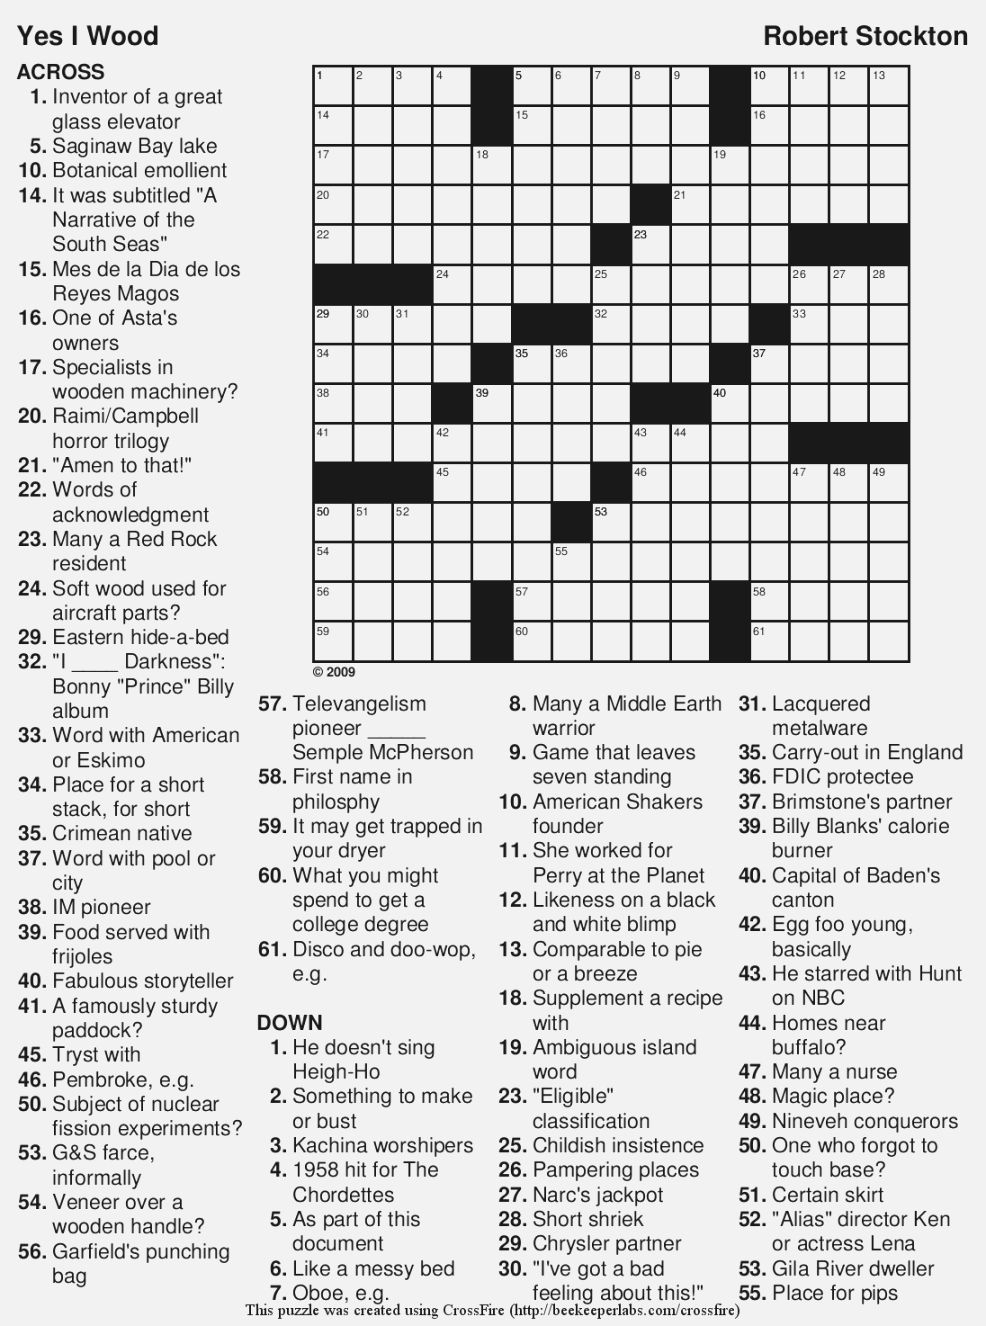 Free Printable Large Print Crossword Puzzles | M3U8 - Printable Crossword Puzzles By Category